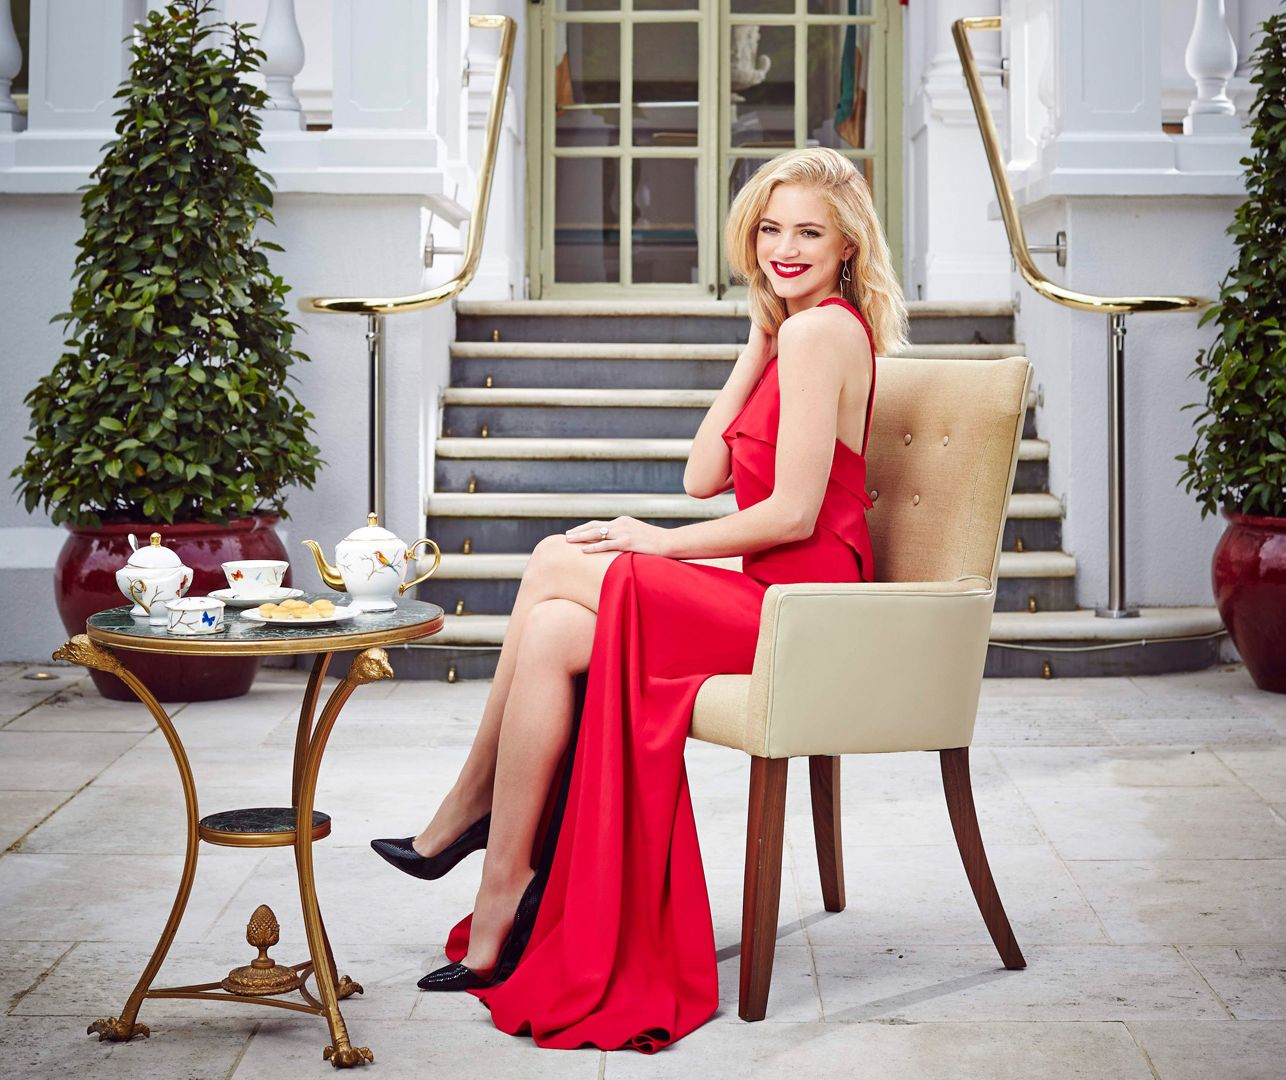 Emily Wickersham suits on a patio wearing an elegant red dress while having tea.